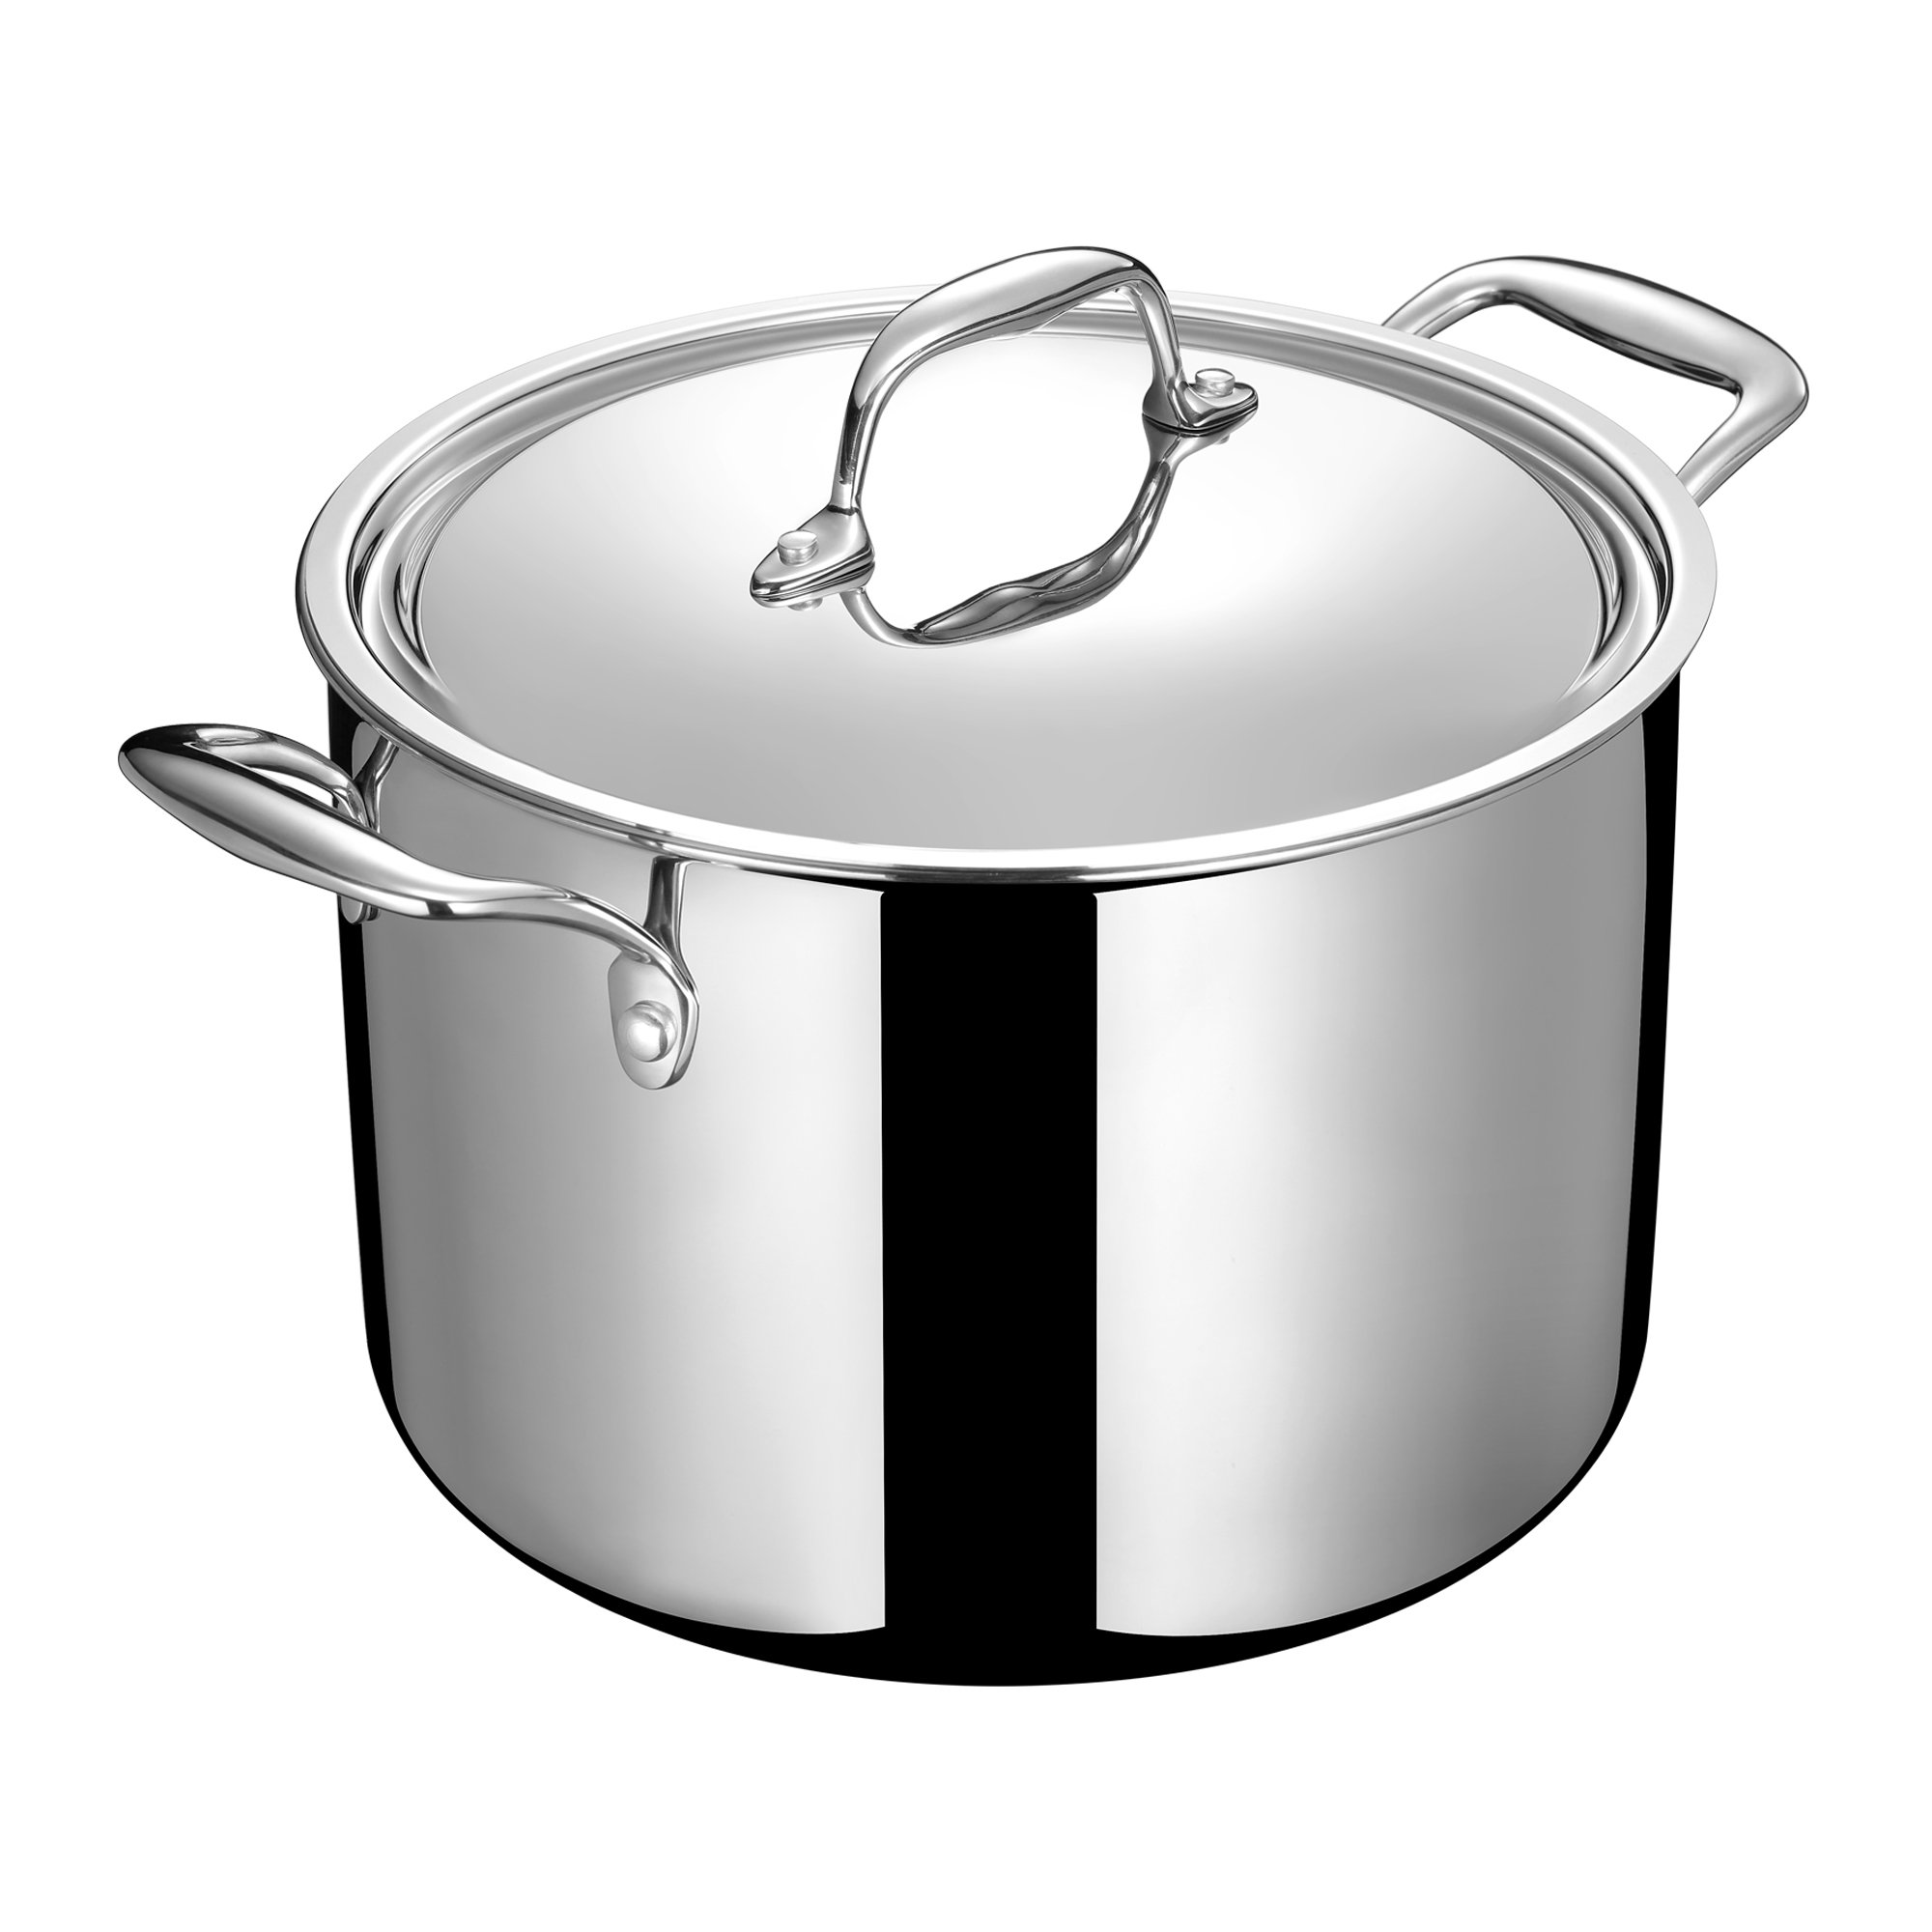 Injoy 8 Quart Stock Pot with Glass Lid Dishwasher Safe 18/10 Stainless Steel 5-Ply Bonded Multi-Purpose Cookware with LFGB certification and the standard of Germany DIN44904, 7.7 lb, Silver